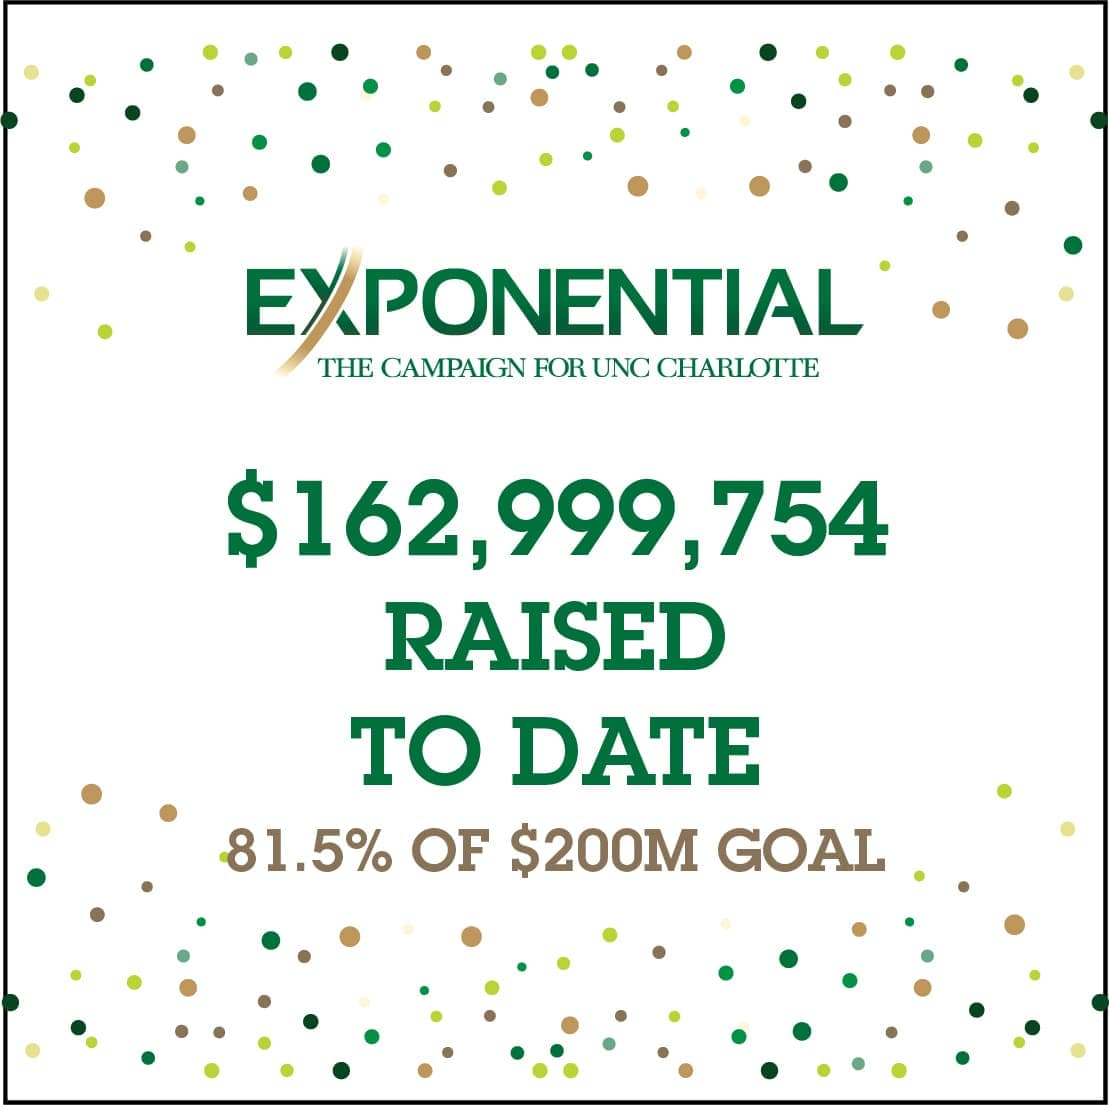 Exponential: $162,999,754 raised to date - 81.5% of $200M goal